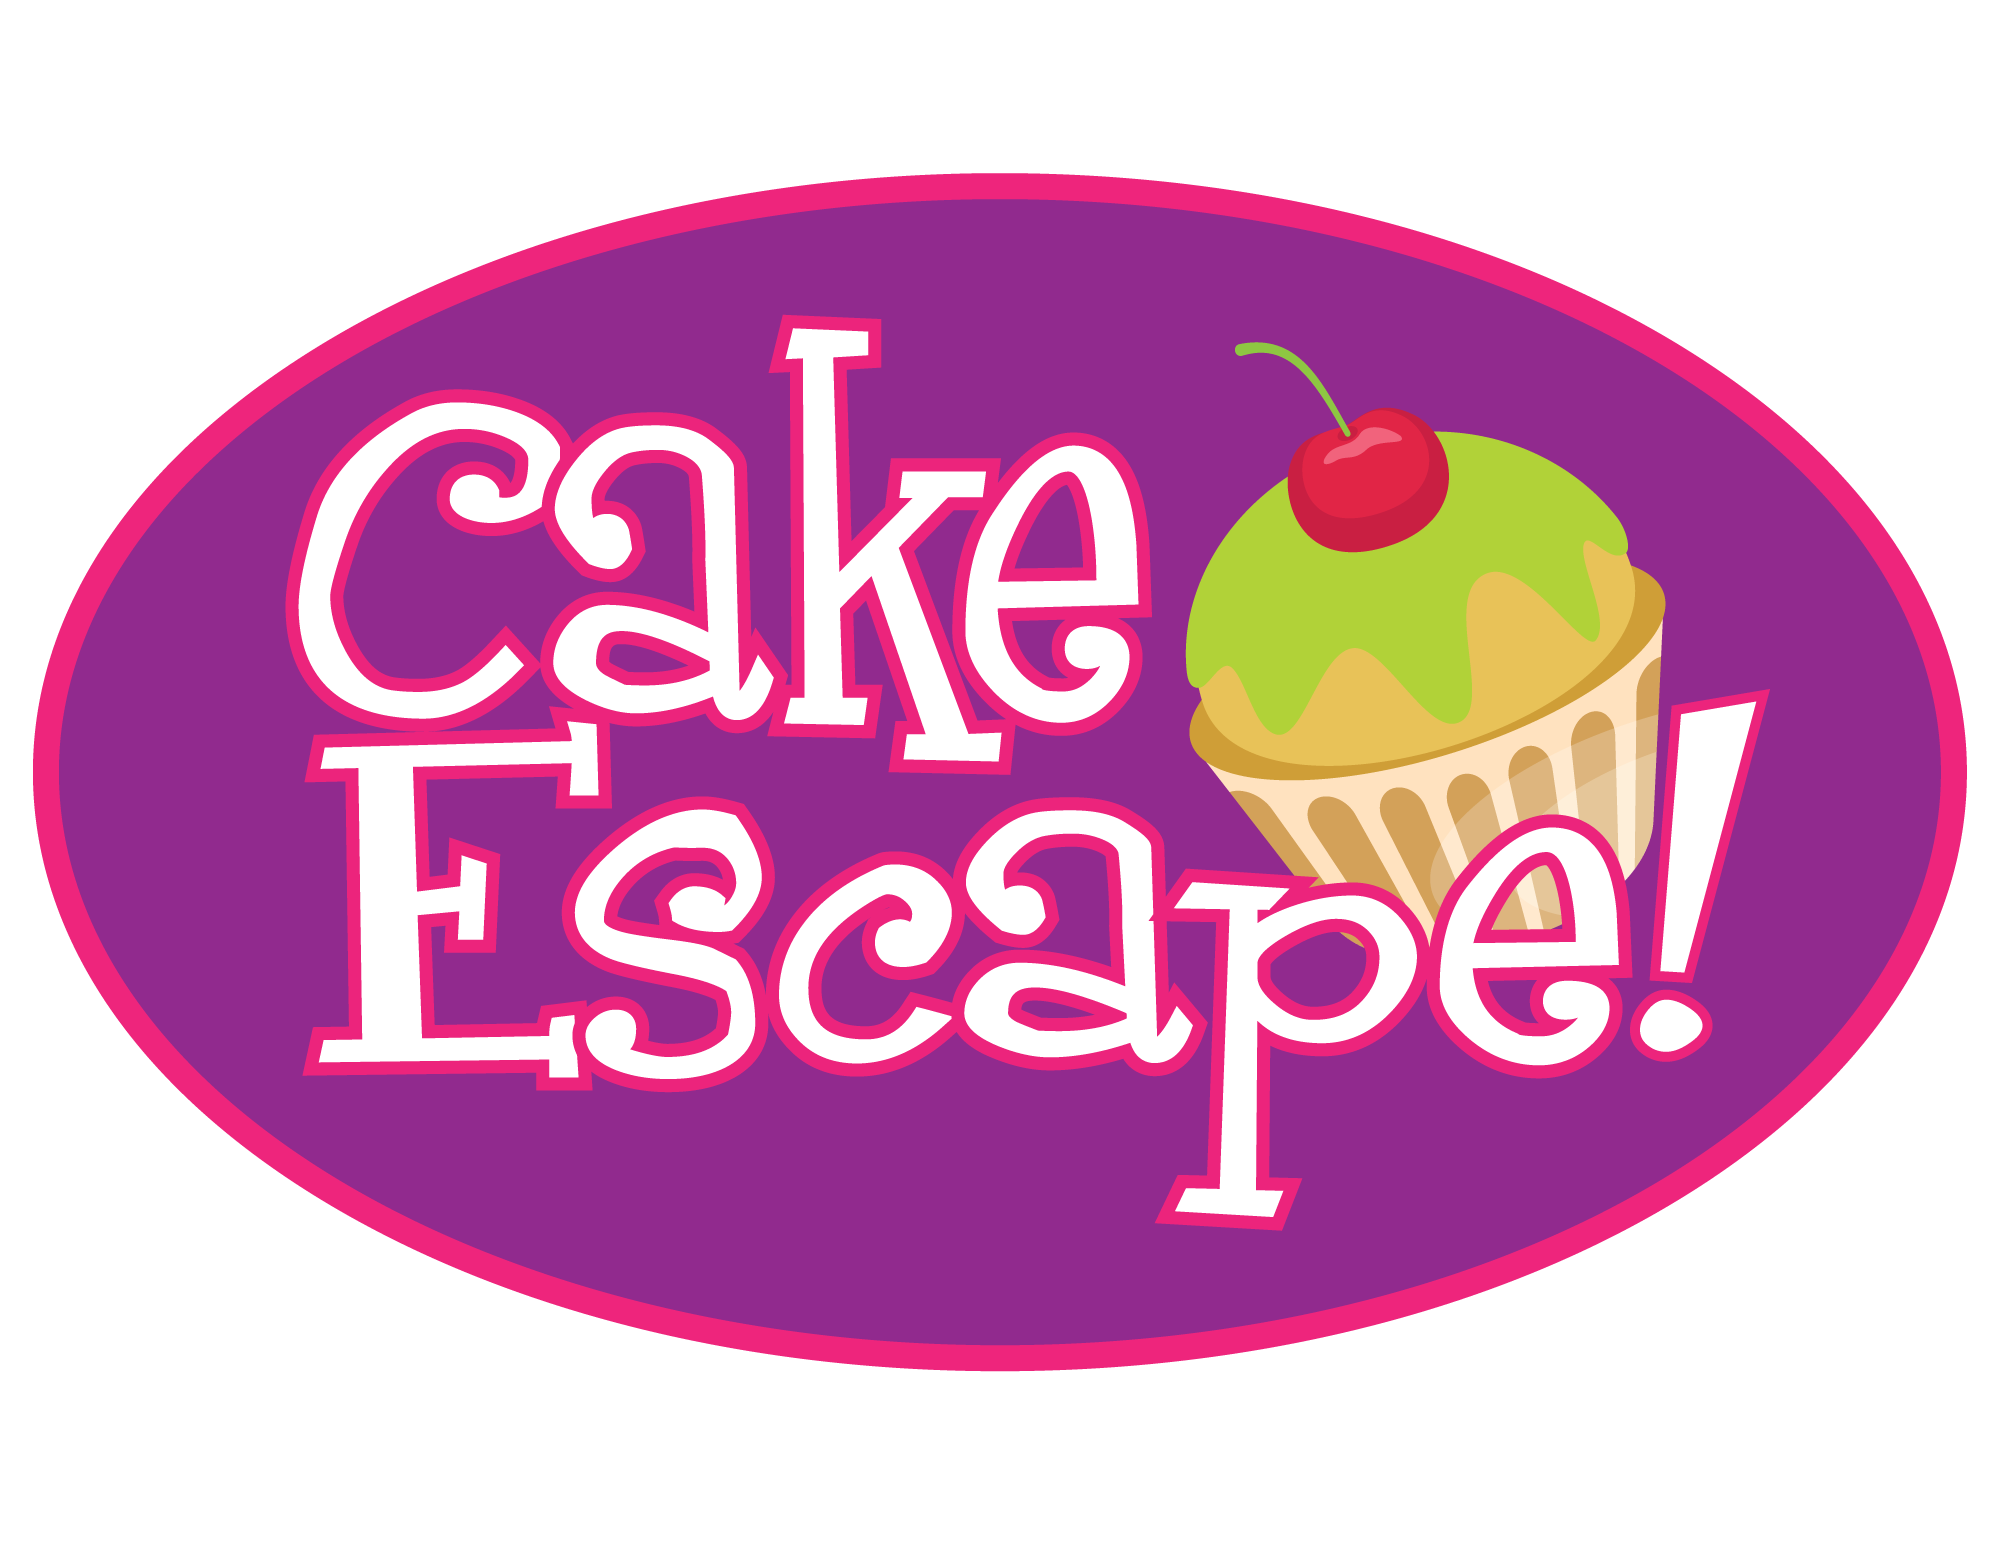 Cake Escape logo